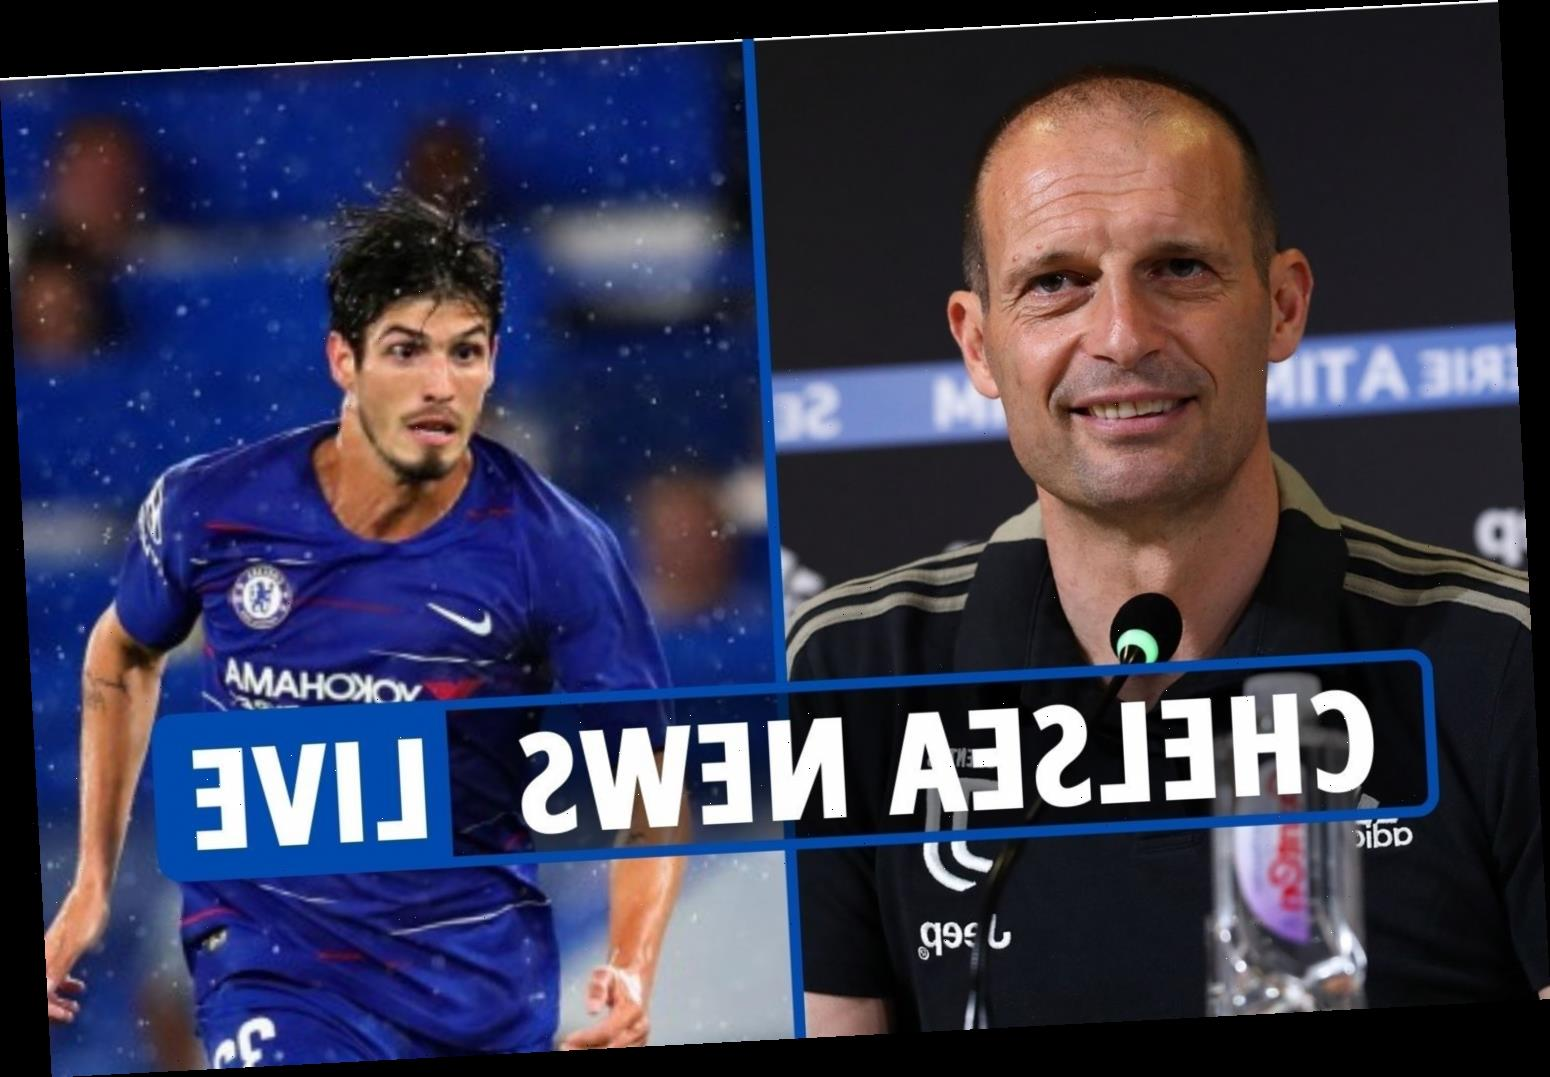 8am Chelsea transfer news LIVE: Piazon LEAVES, Tuchel and Allegri included on manager shortlist, Rice LATEST